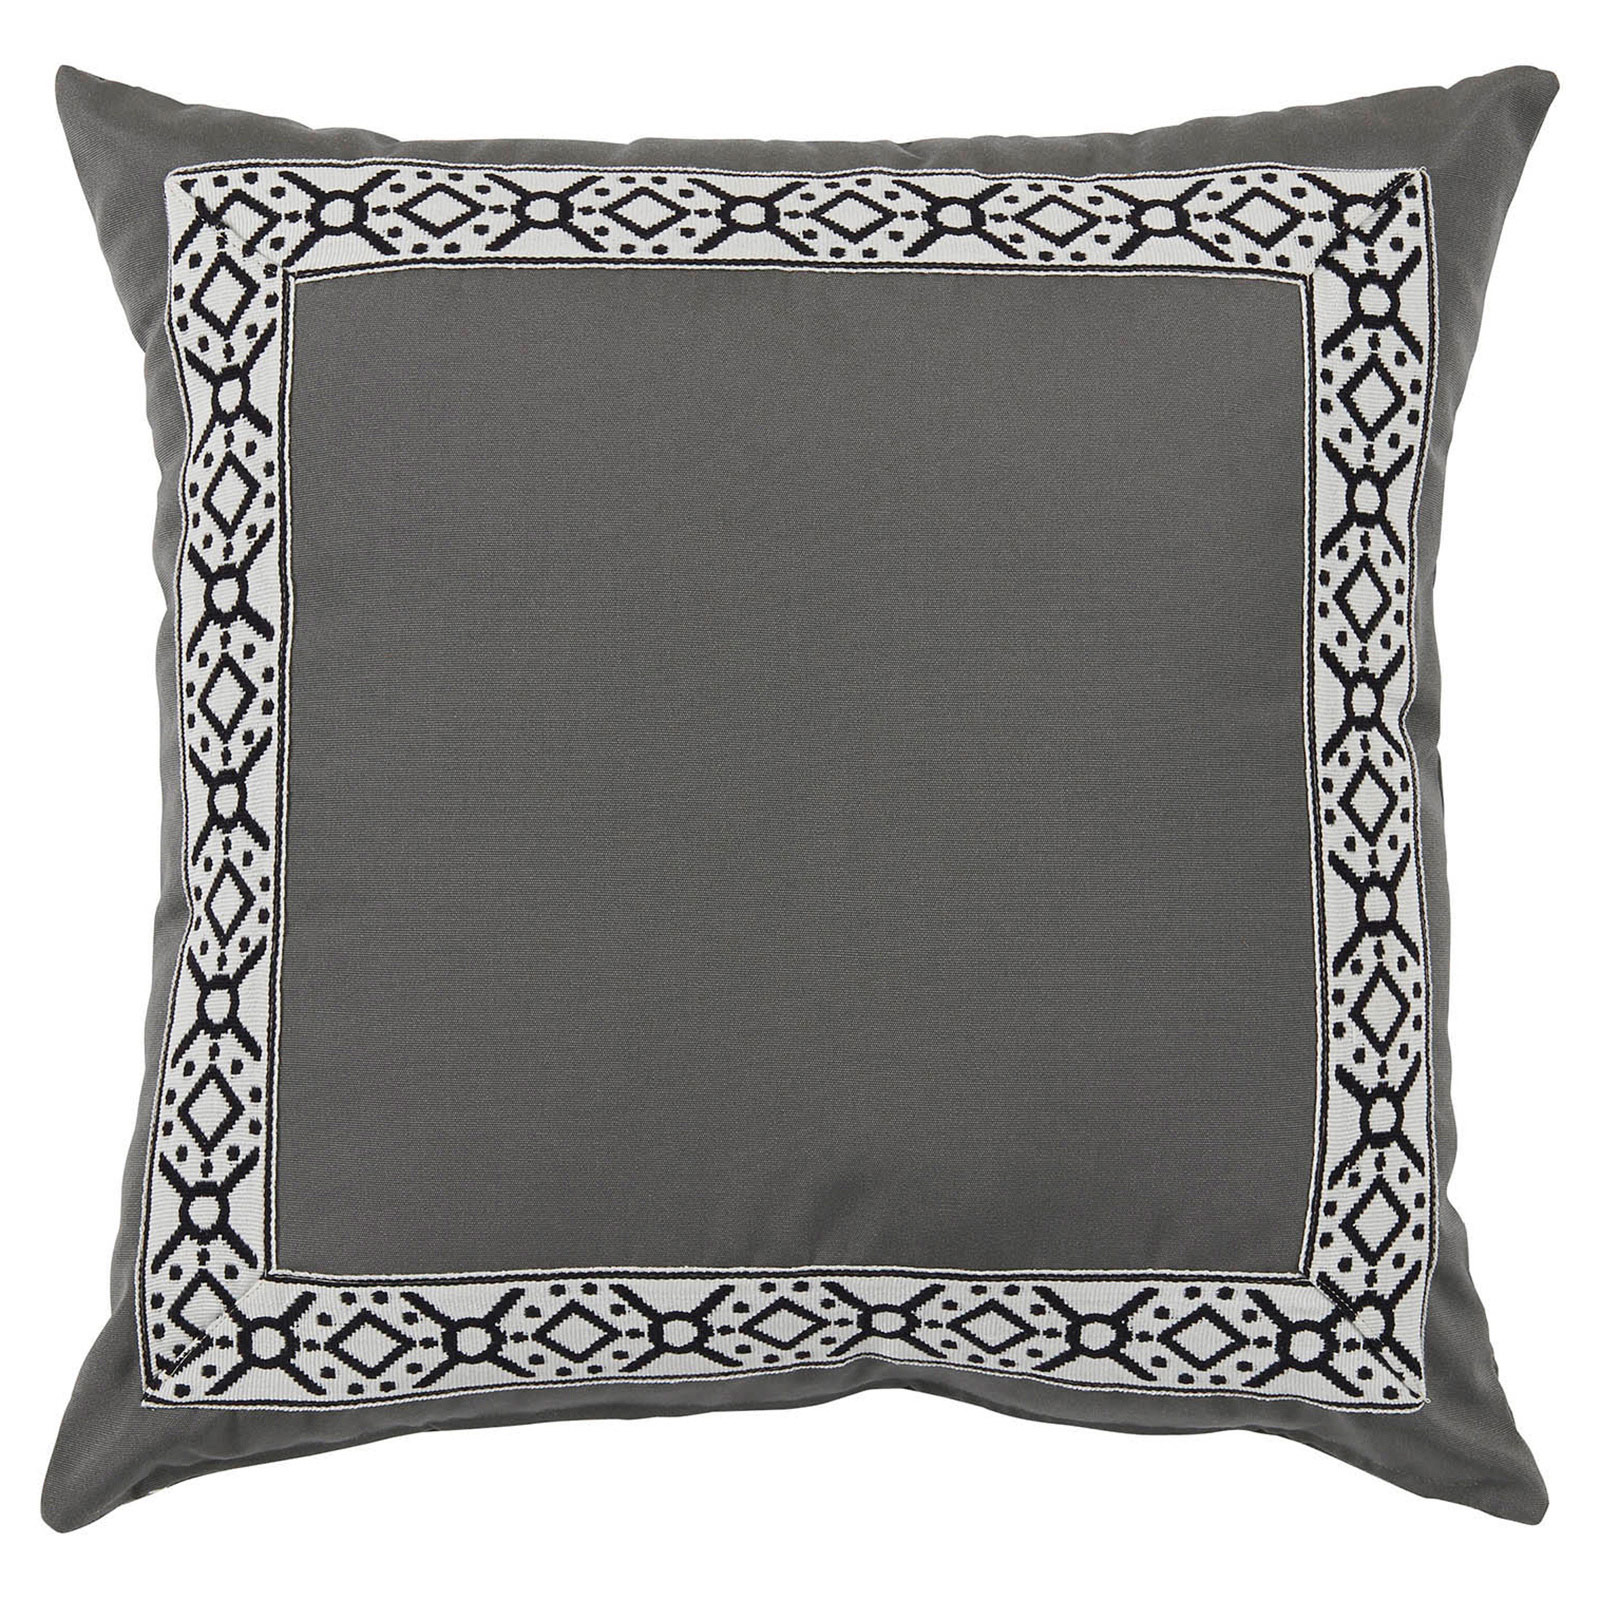 Perri Modern Global Trim Grey Outdoor Pillow - 22x22